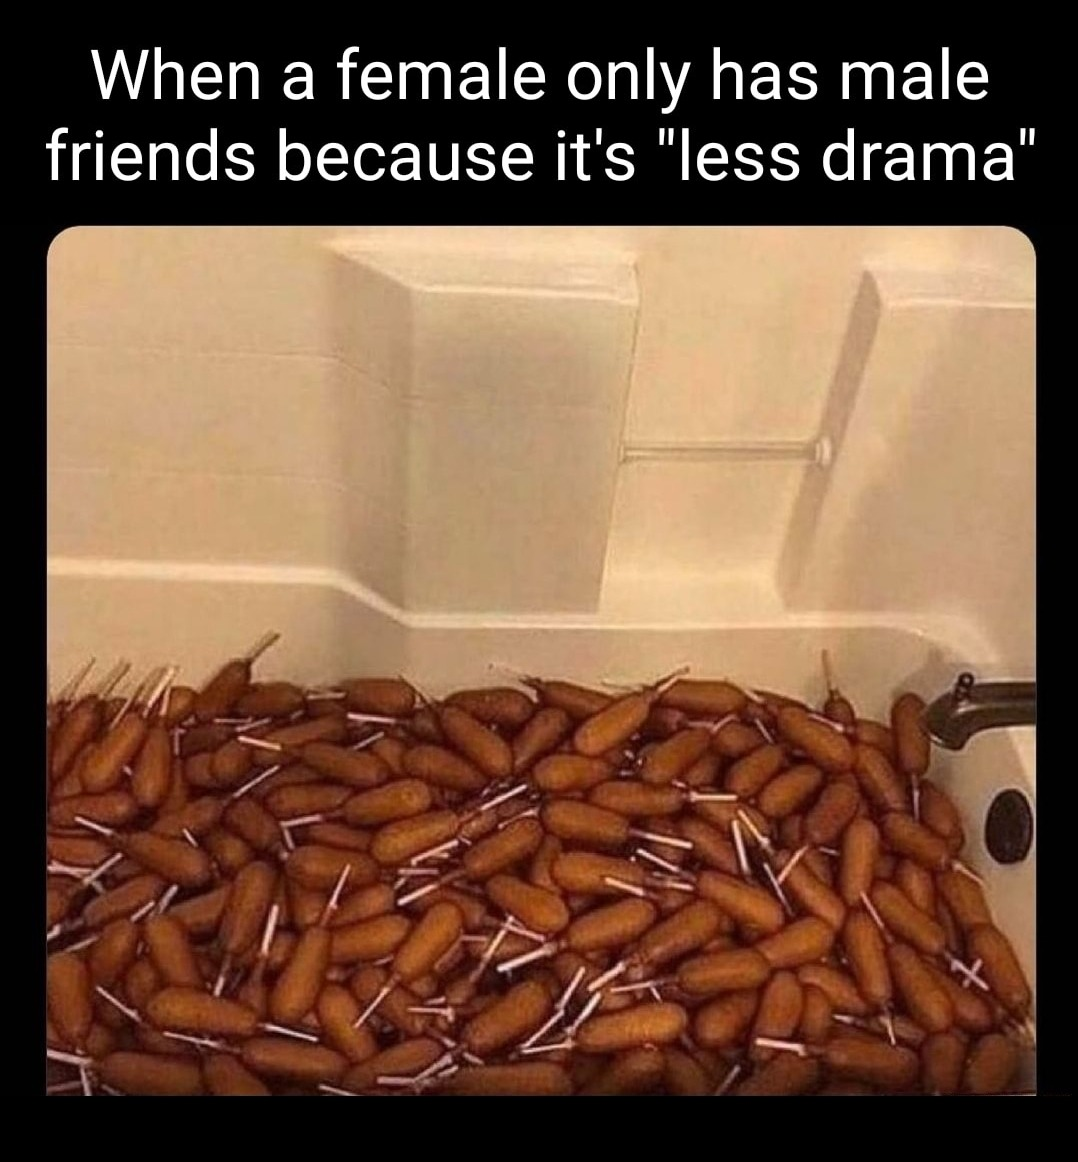 """When a female only has male friends because it's """"less drama"""" - meme"""